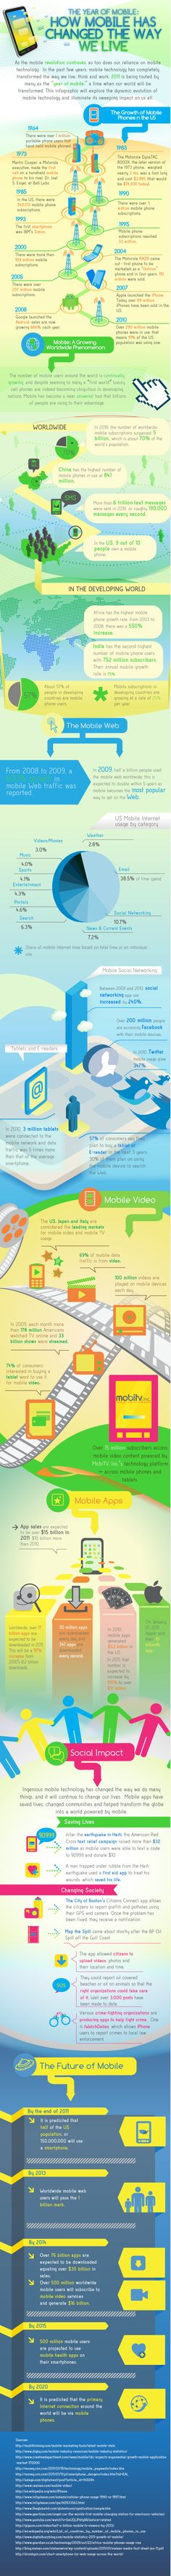 Mobile Infographic - How Mobile Has Changed the Way We Live